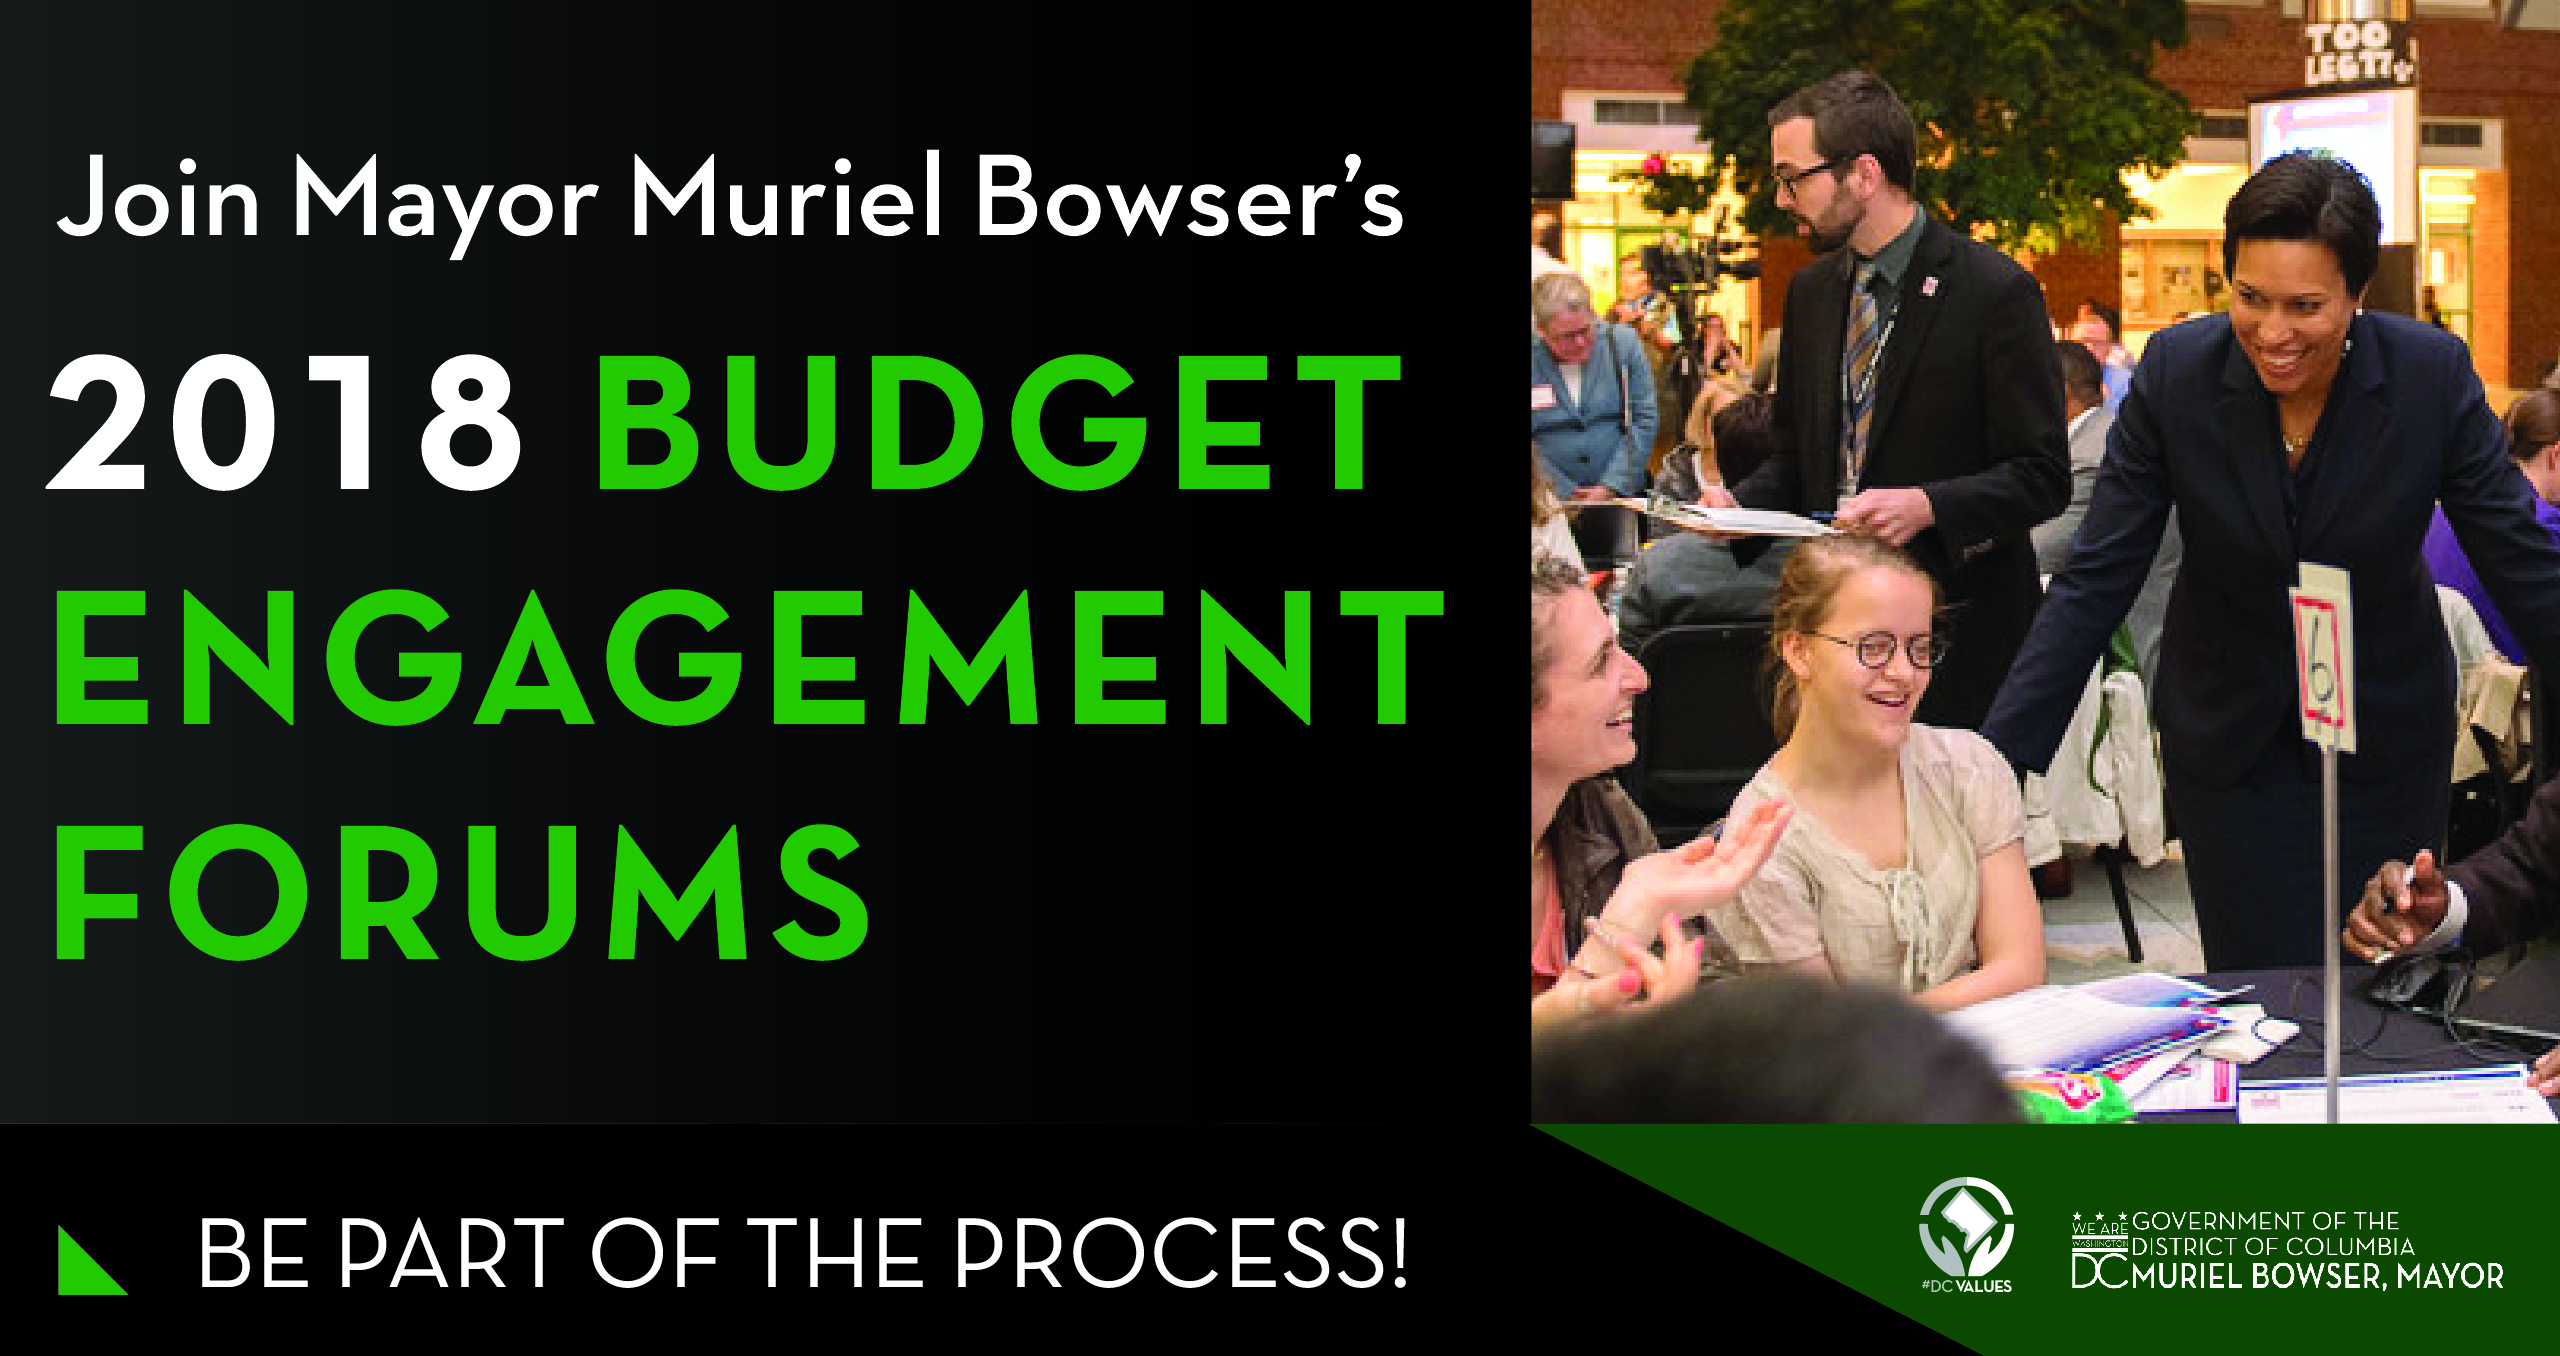 2018 Budget Engagement Forum